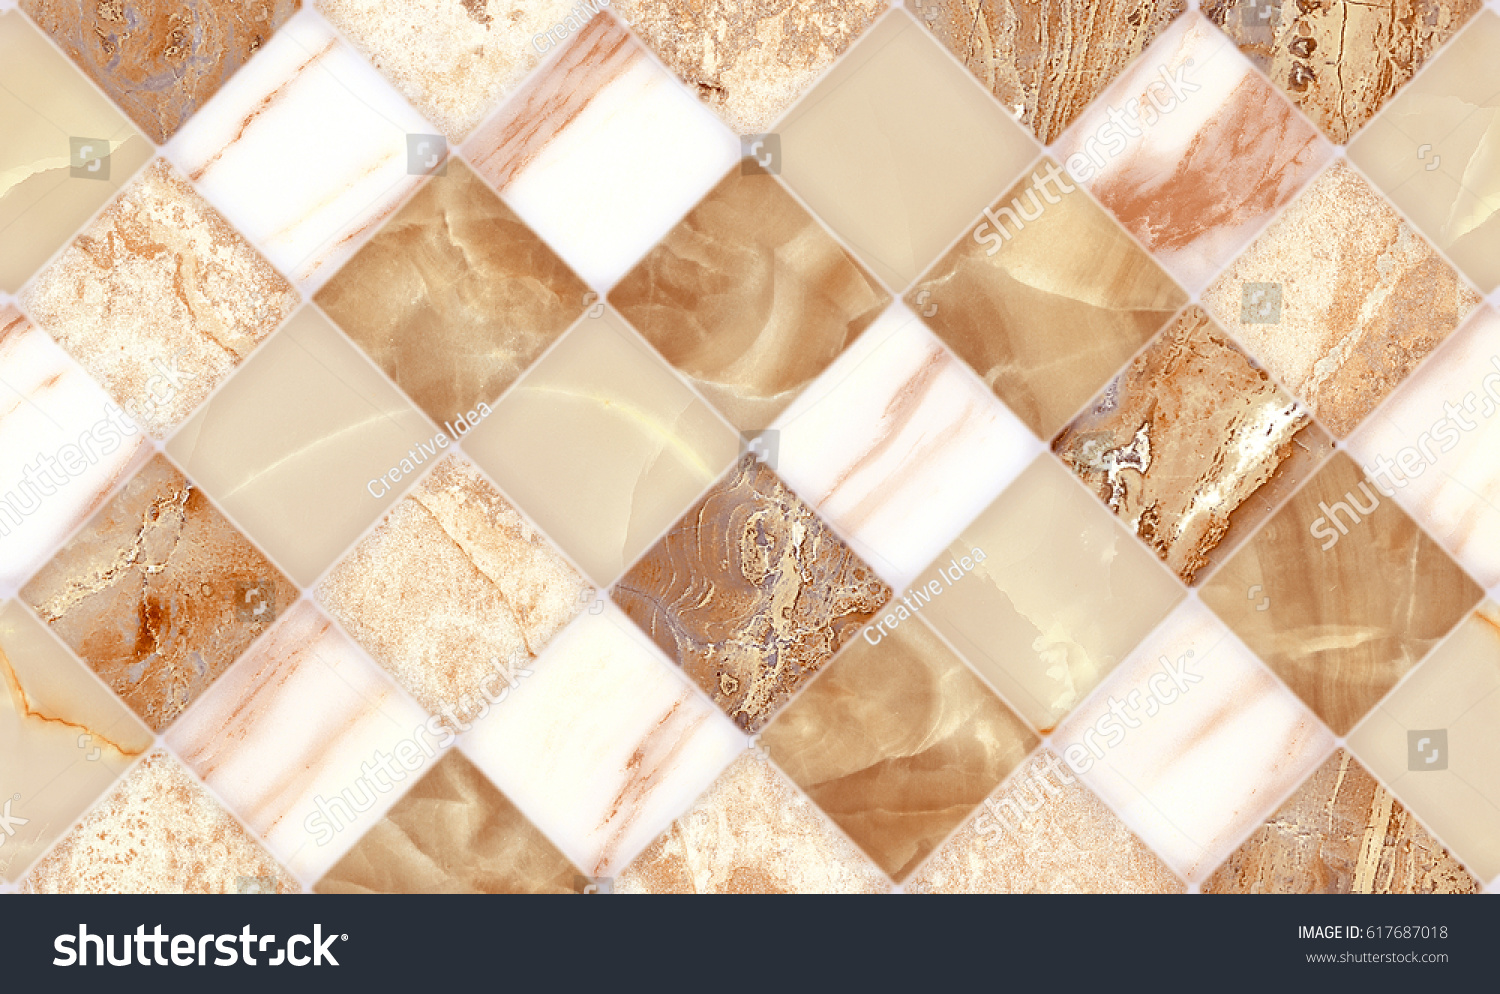 Wall floor marble tiles design pattern stock illustration wall floor marble tiles design pattern background for buildings dailygadgetfo Image collections